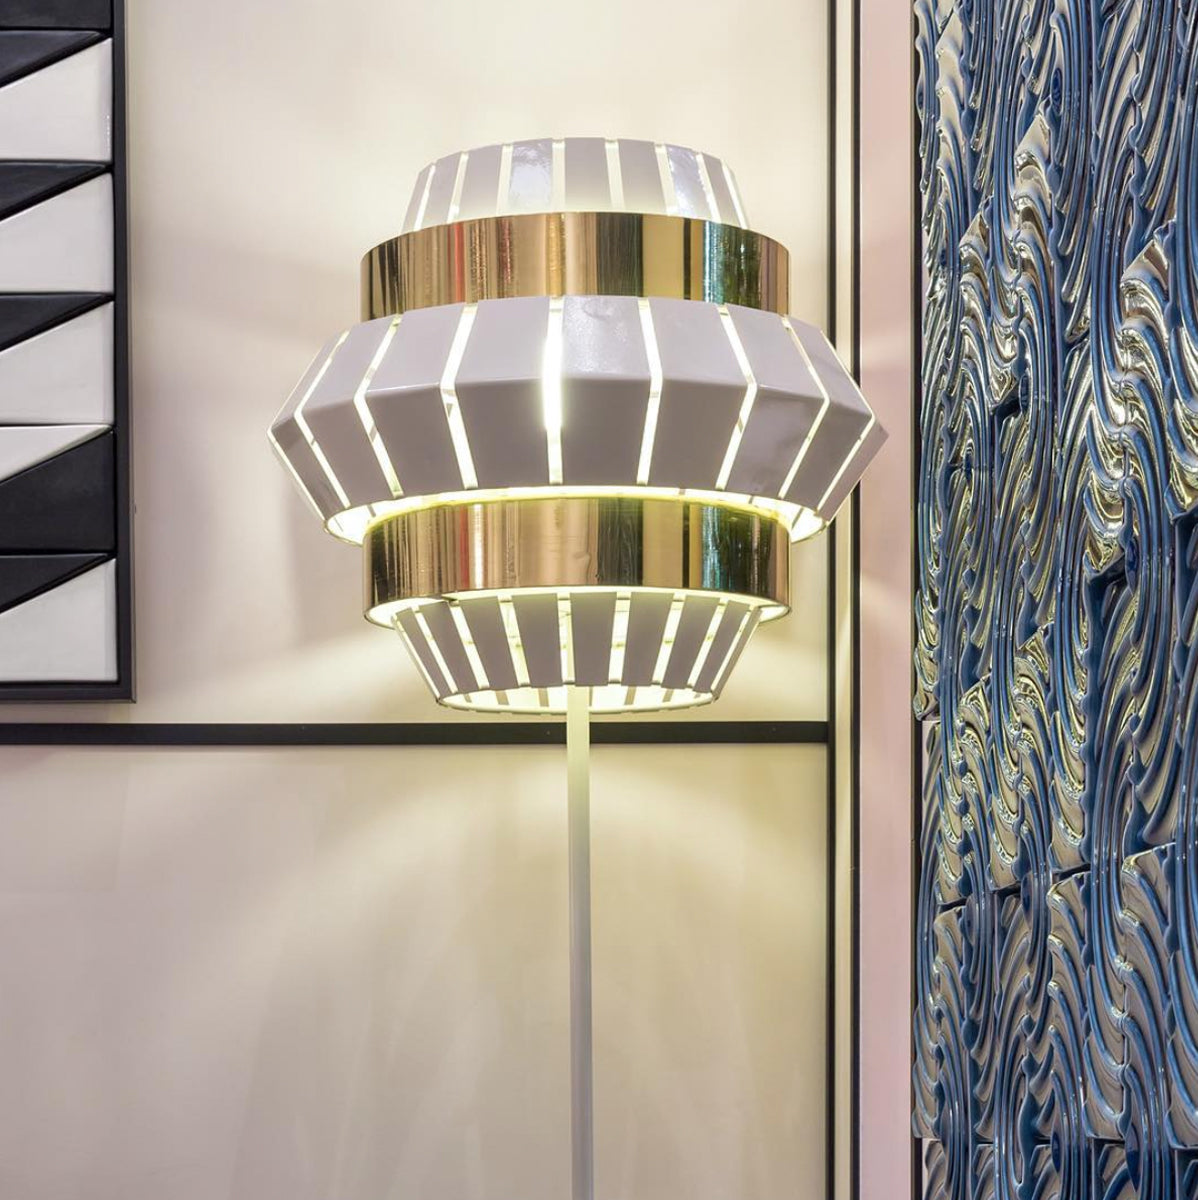 Comb Floor Light by Utu Soulful Lighting | Do Shop